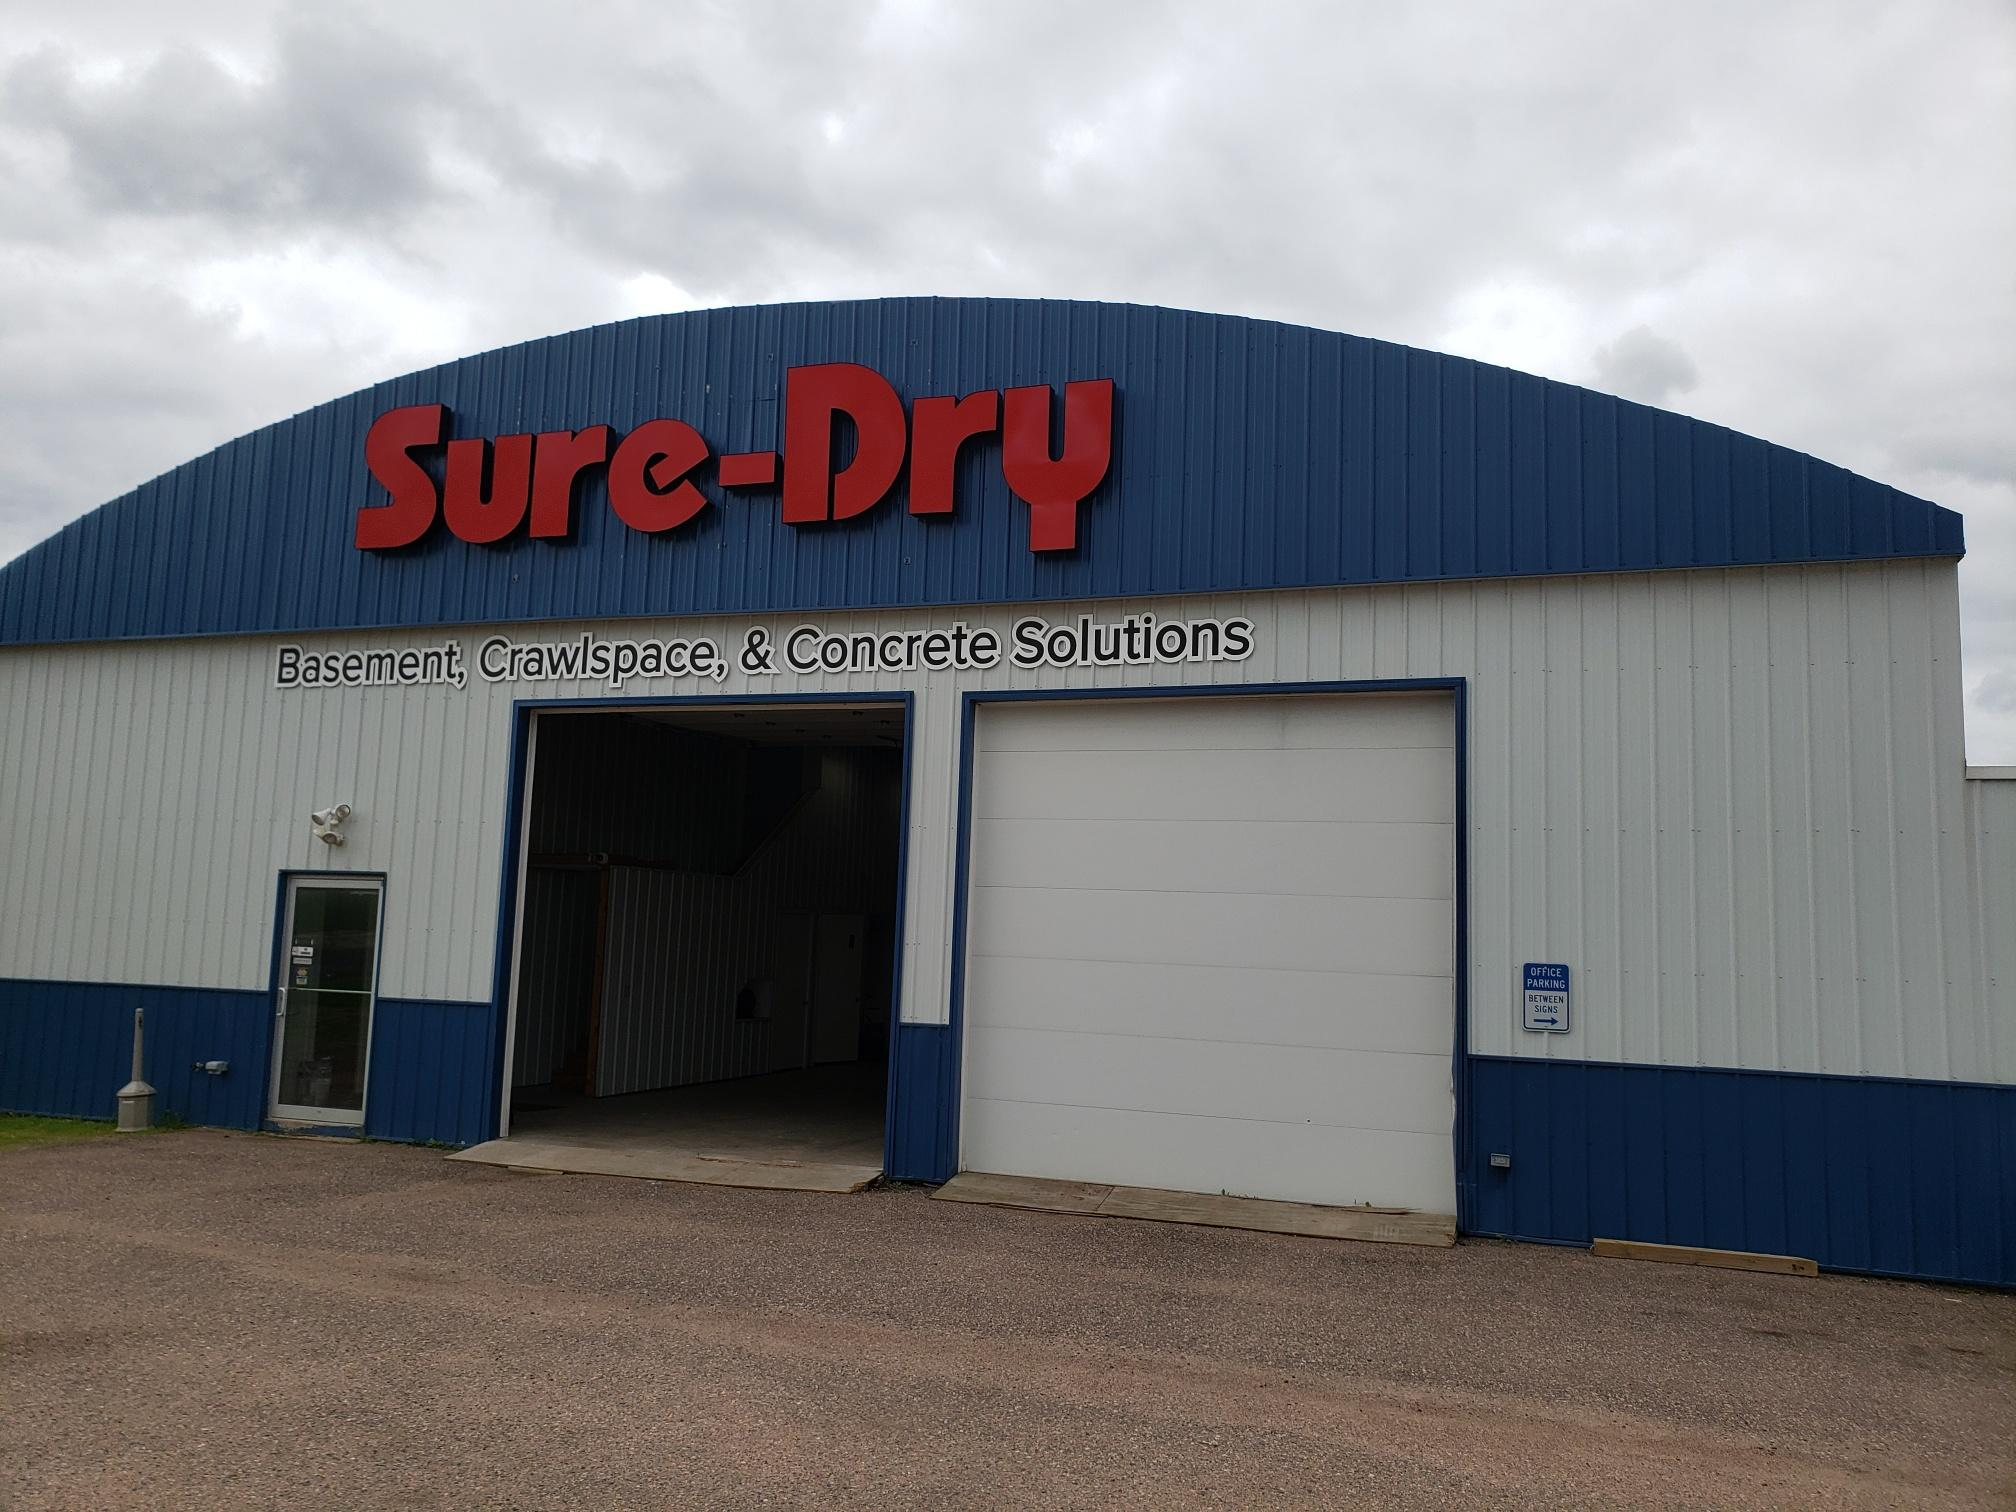 Sure-Dry Basement Systems Wausau Building